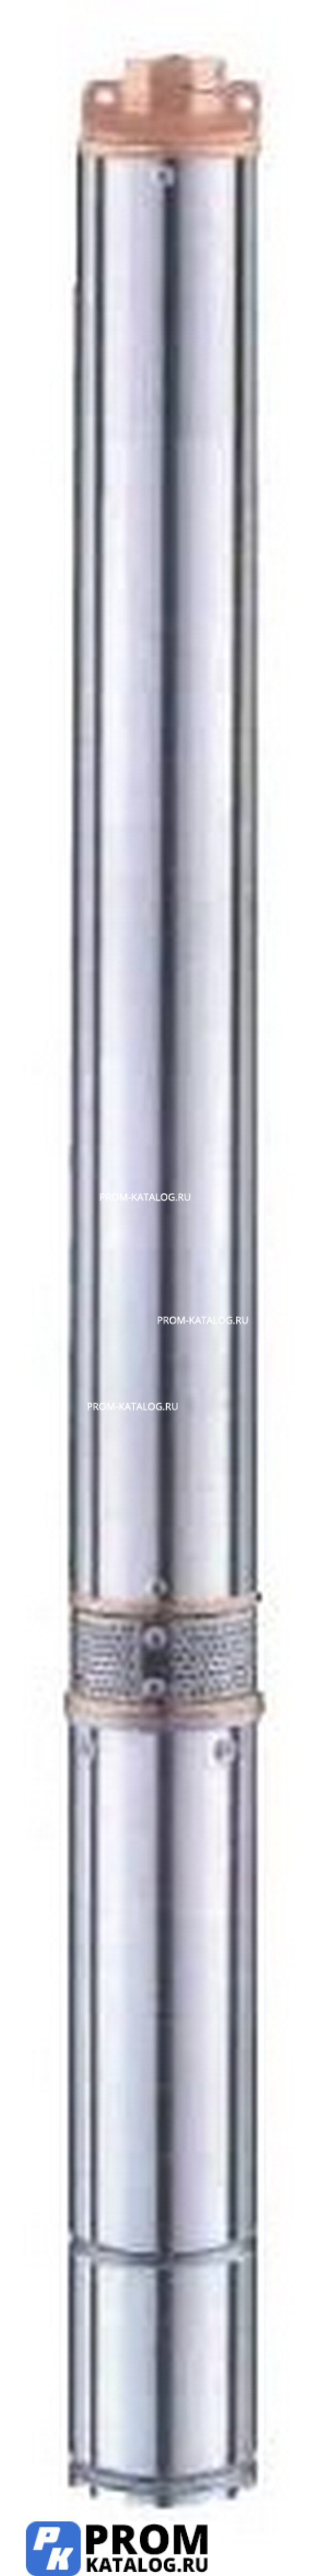 Насос Waterstry 3ST 1 - 90 1x230V (кабель 70 м)